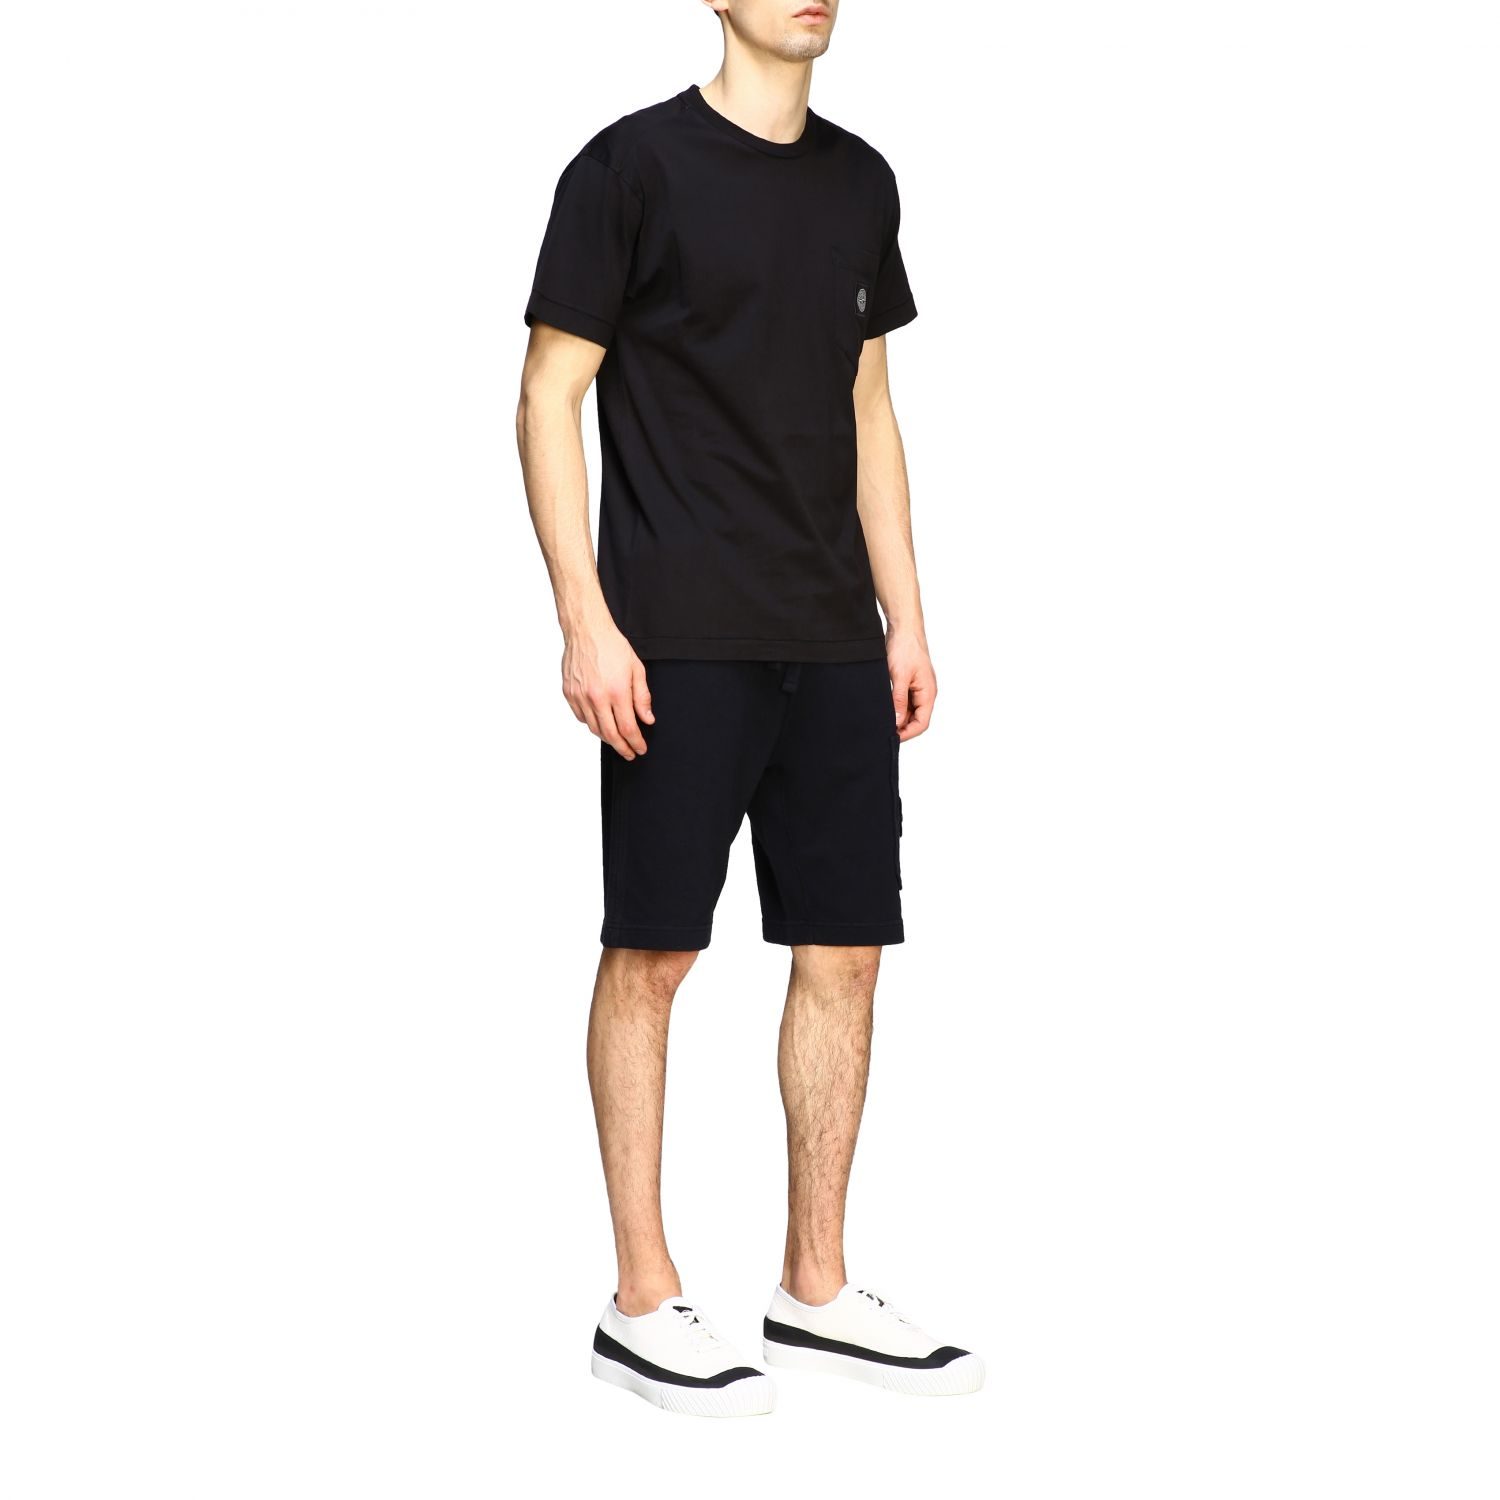 T-shirt men Stone Island black 2